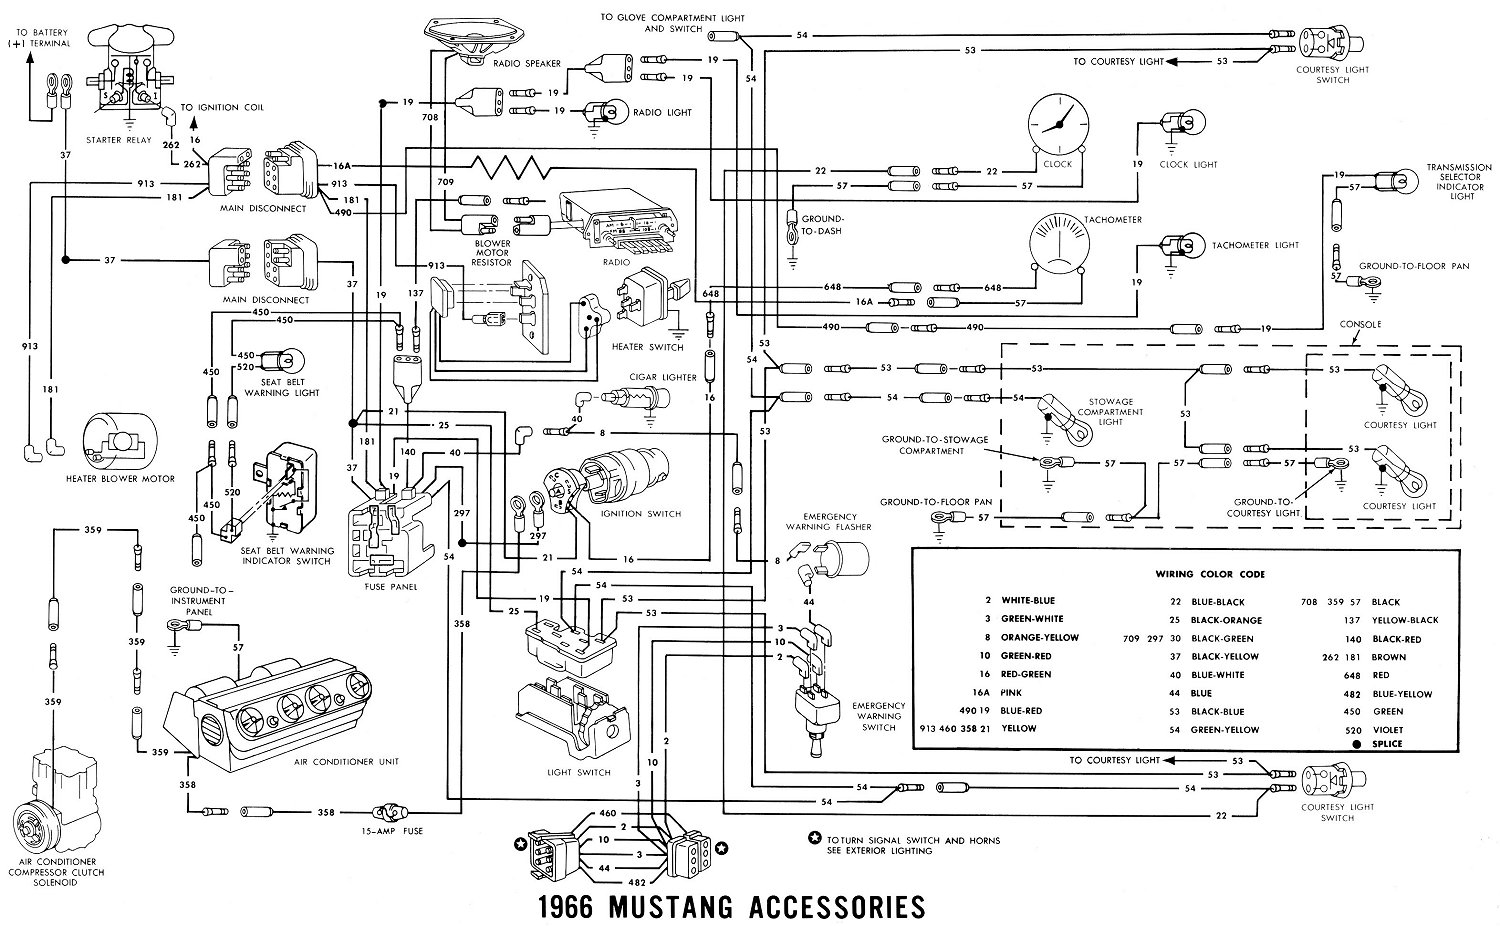 1966 Ford Mustang Accessories Wiring Diagram?wu003d140u0026hu003d140 wiring diagram for 1970 ford mustang readingrat net 1970 ford wiring diagram at soozxer.org